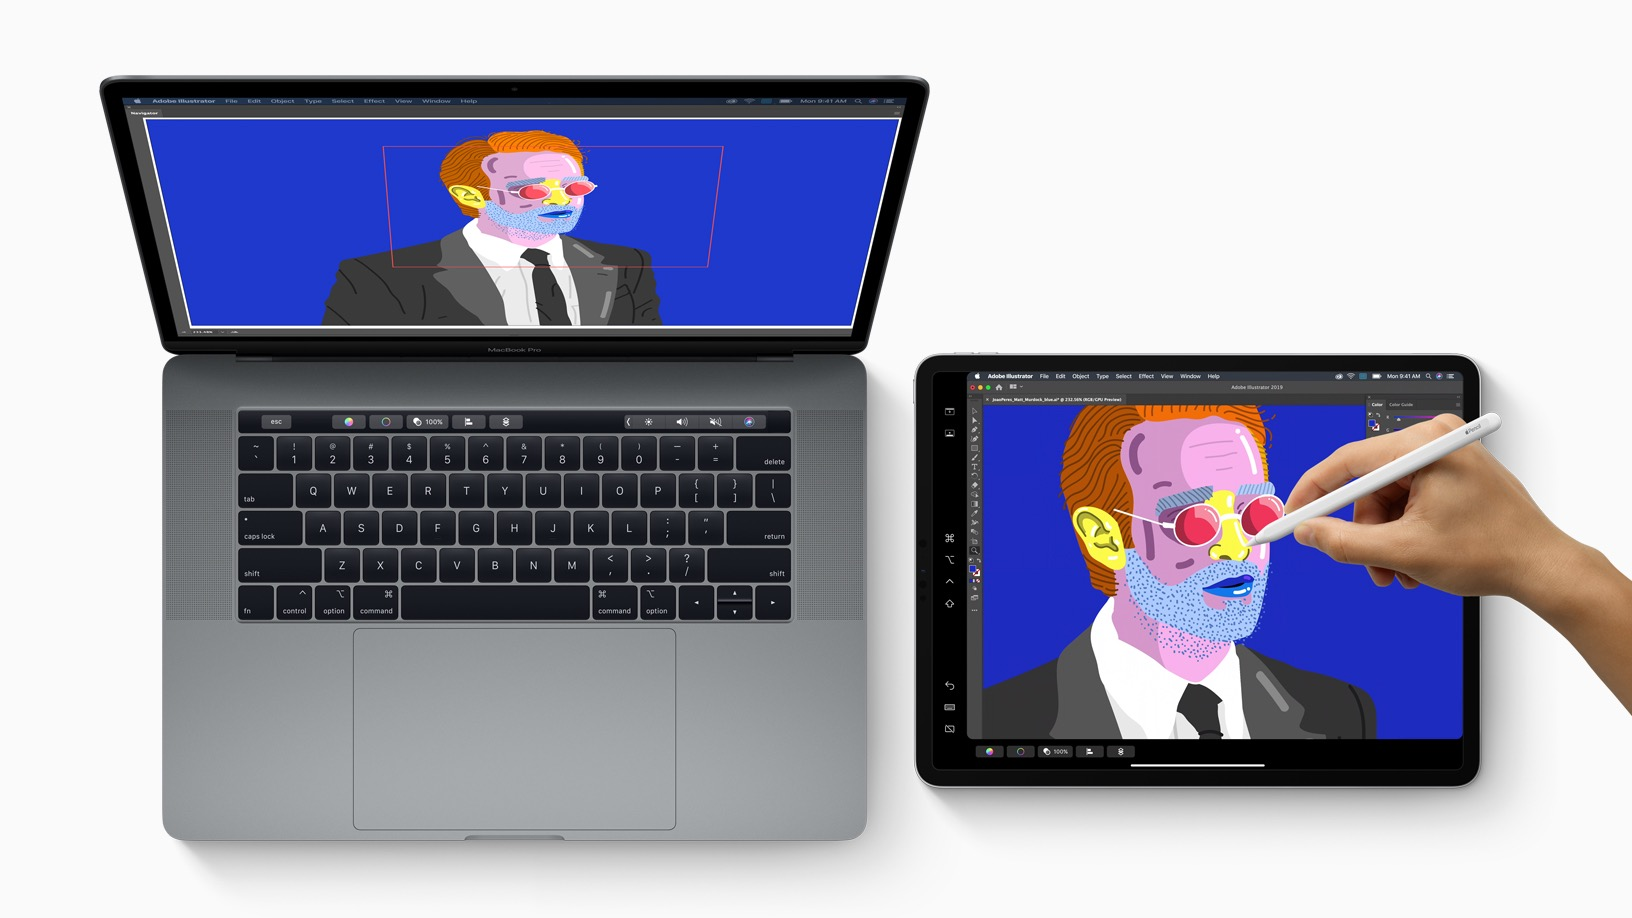 Apple previews macOS Catalina sidecar with iPad Pro 06032019